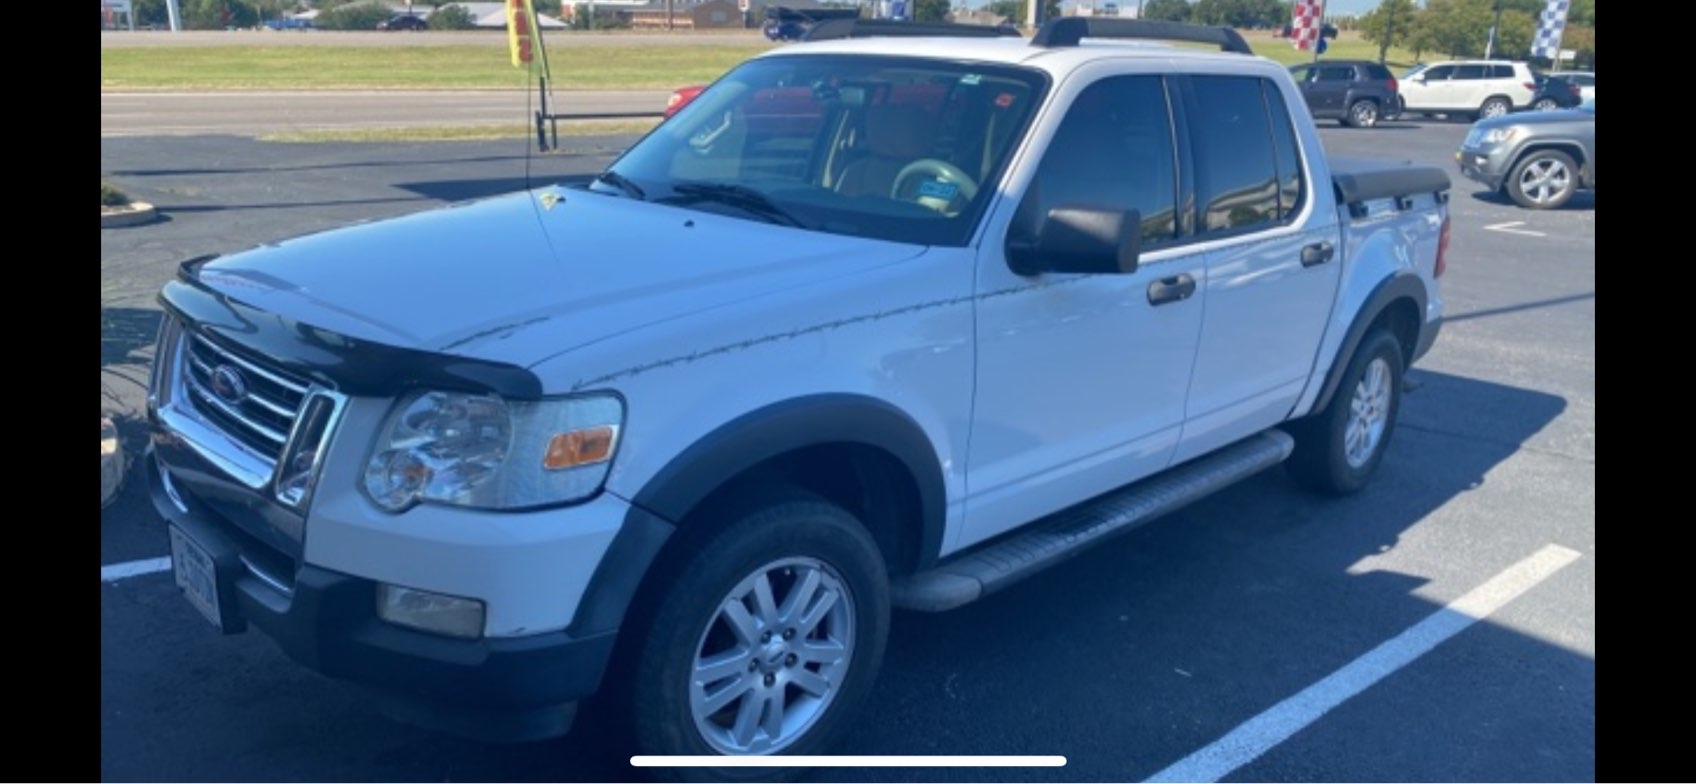 used vehicle - SUV FORD EXPLORER SPORT TRAC 2007